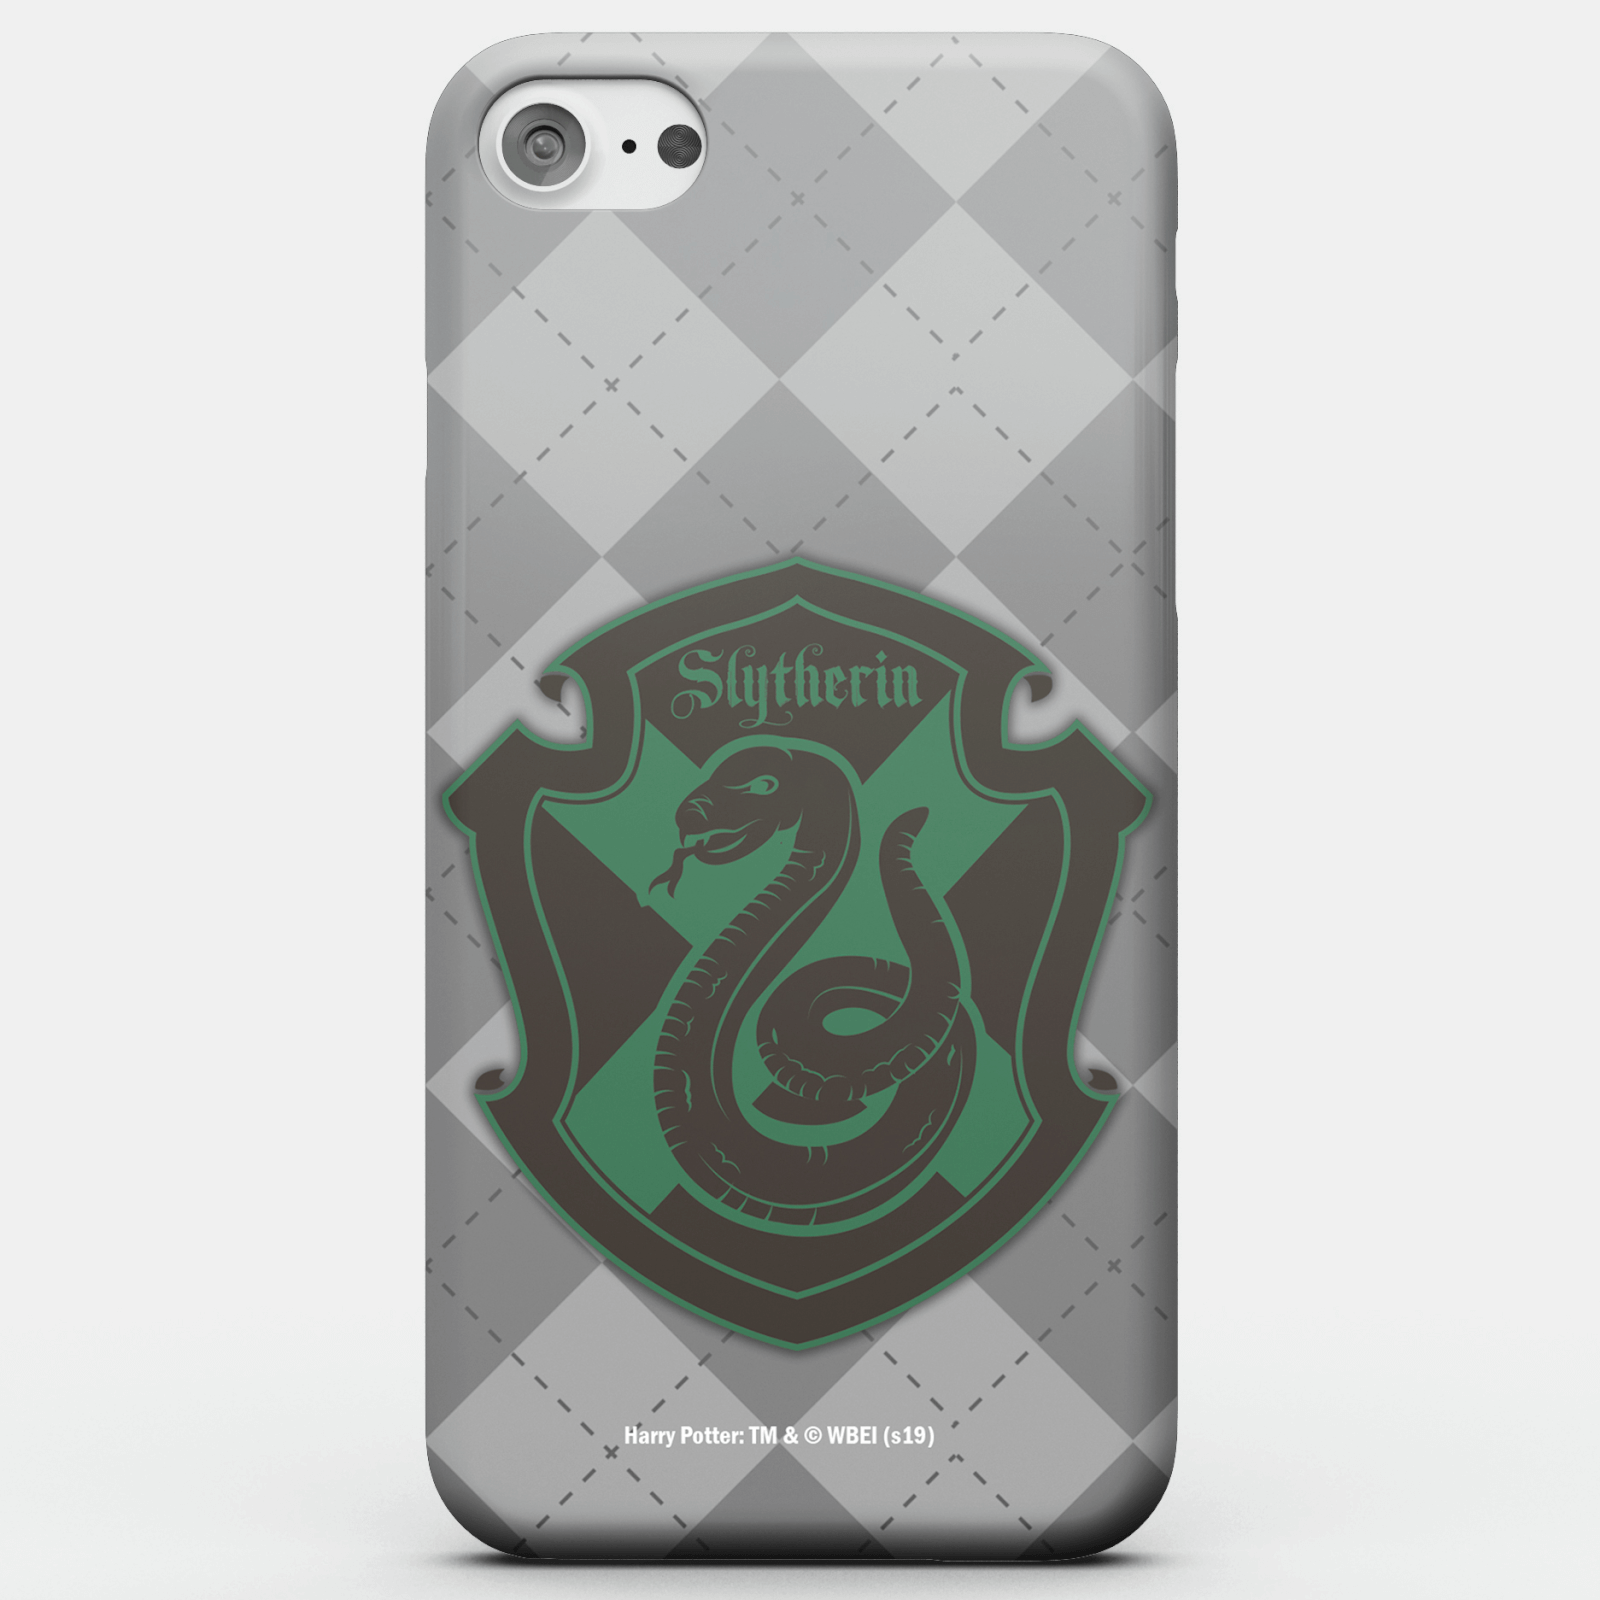 competitive price c1c05 726cc Harry Potter Phonecases Slytherin Crest Phone Case for iPhone and Android